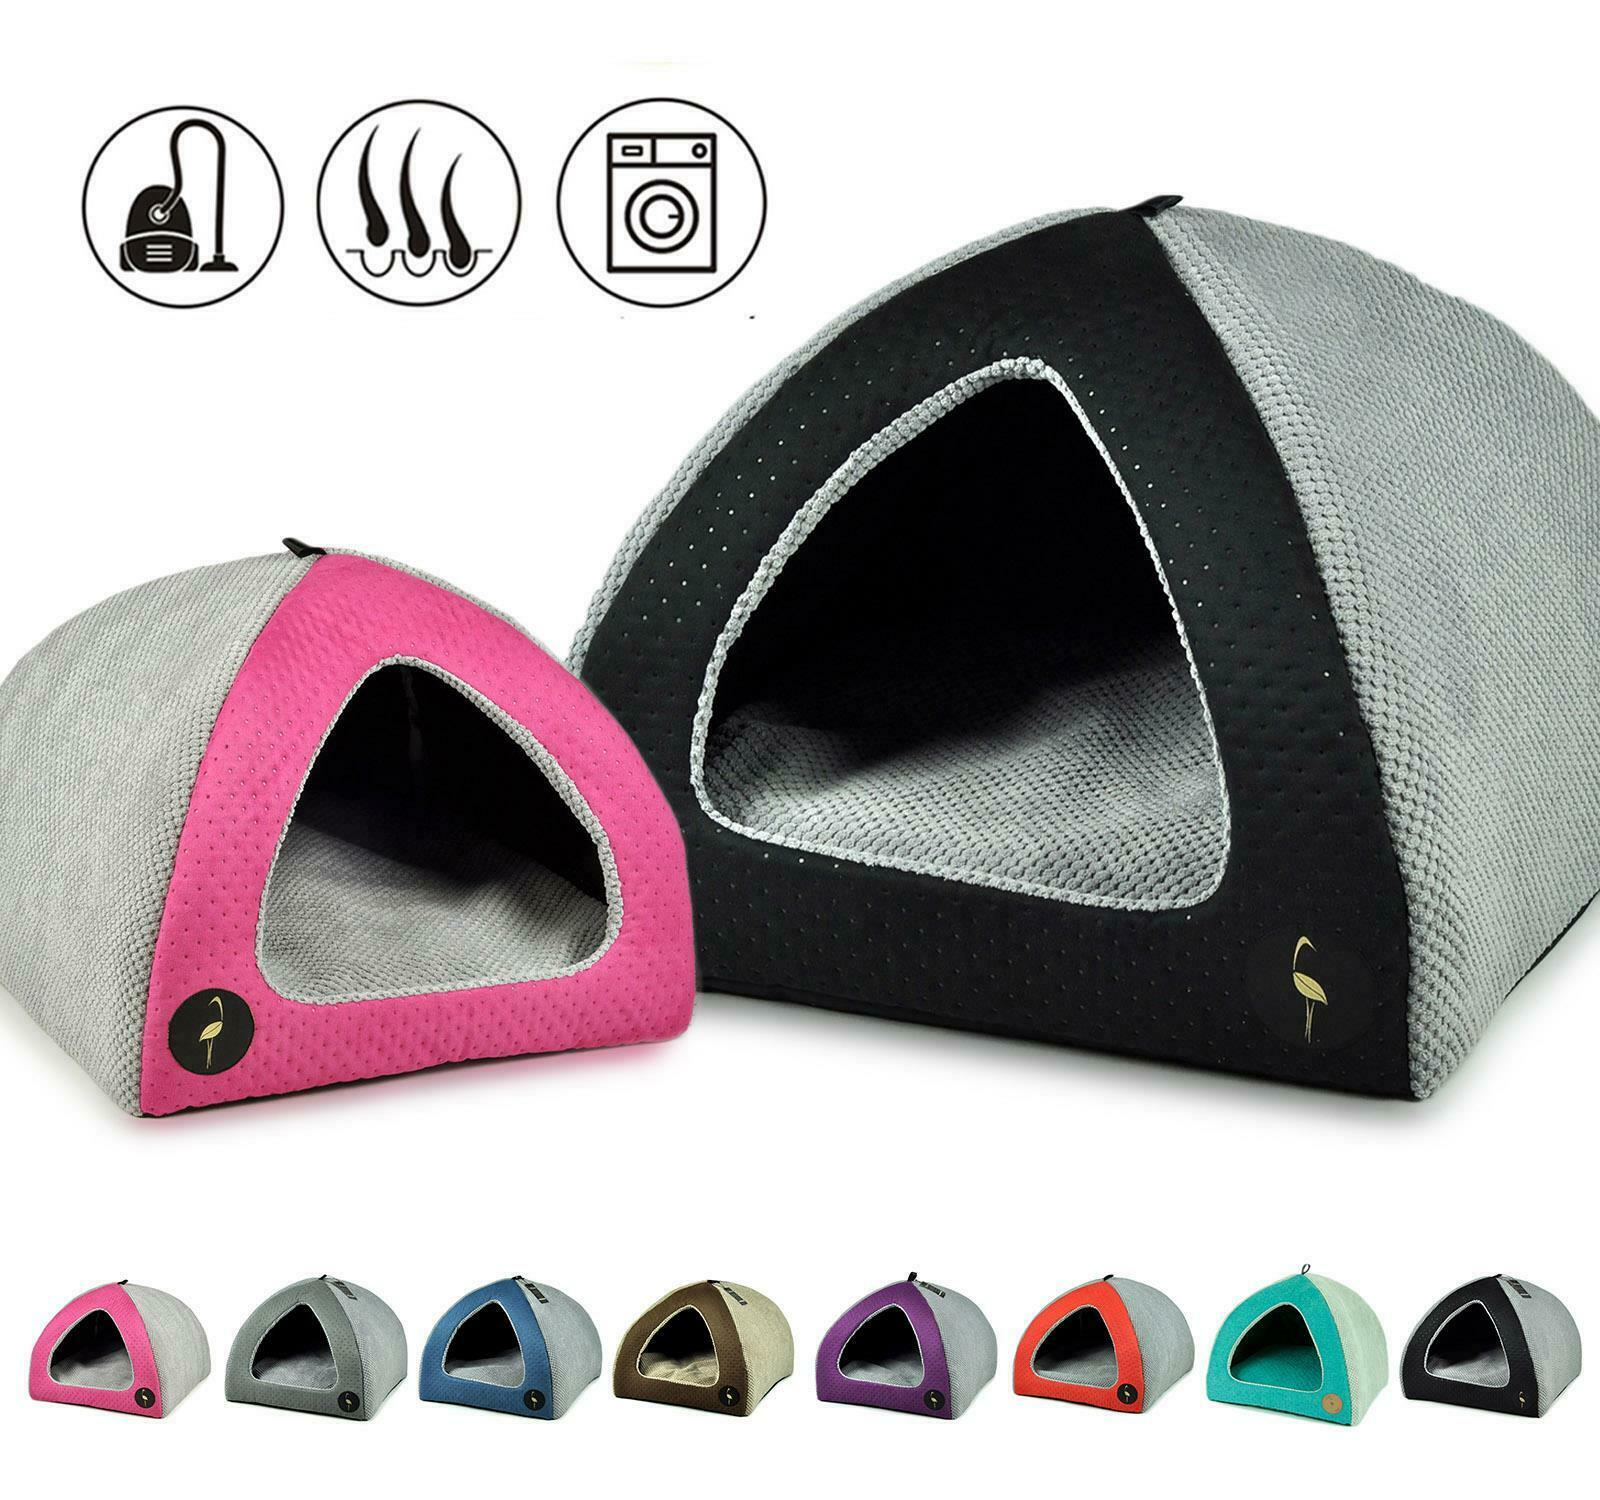 CatCentre® Handmade Luxury Pet Cat Puppy Dog Igloo Bed House Pyramid Sofa Cave